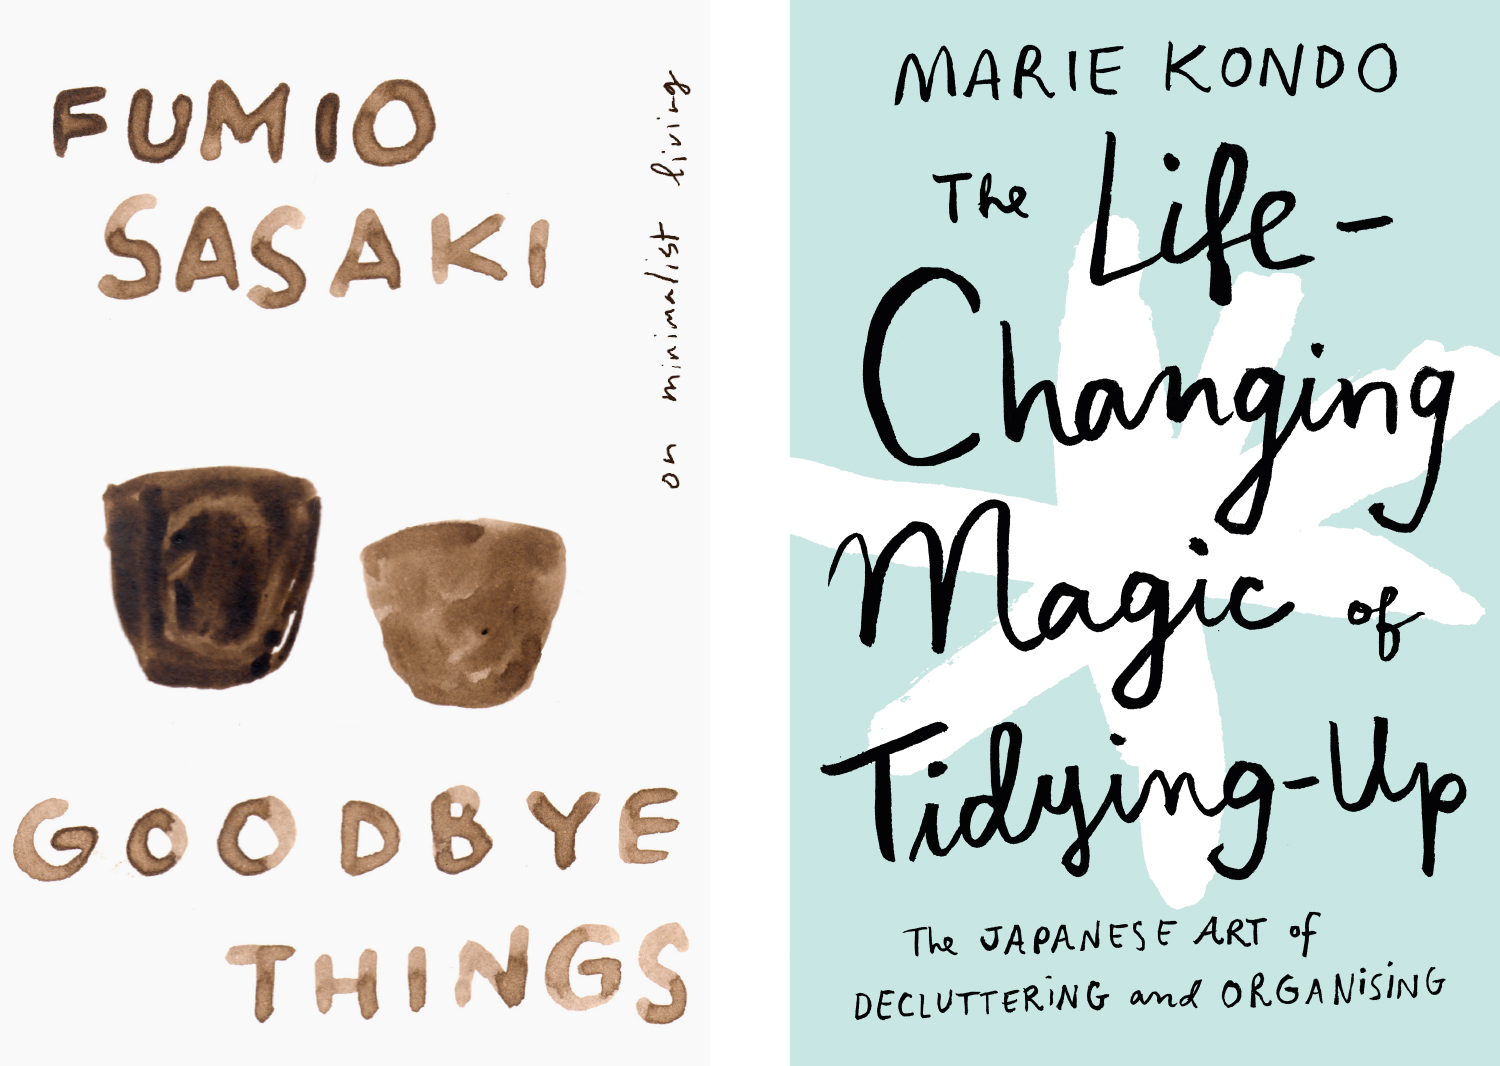 Goodbye Things and Marie Kondo personal covers